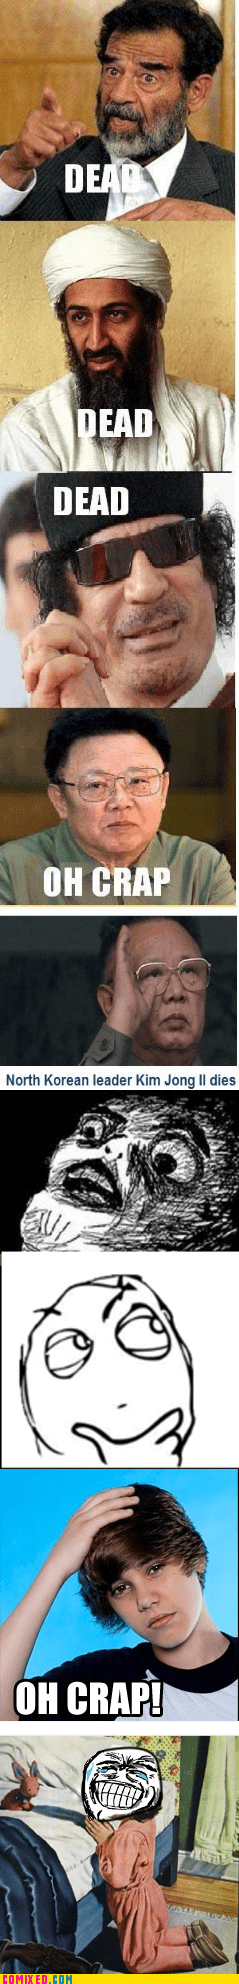 best of week dead justin bieber Kim Jong-Il oh crap the internets